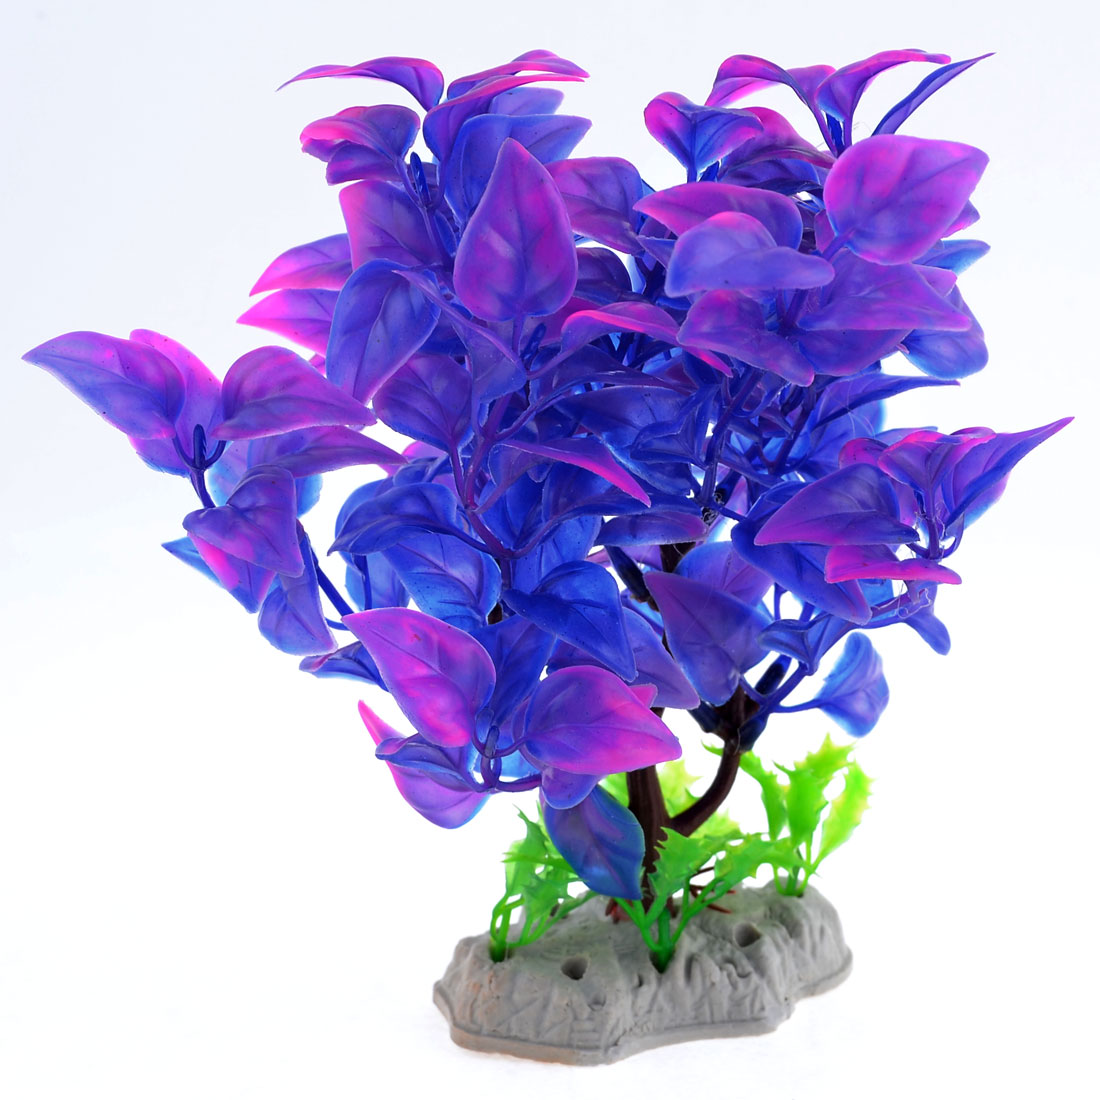 "7.5"" Height Manmade Blue Purple Plant Grass for Fish Tank Aquarium"